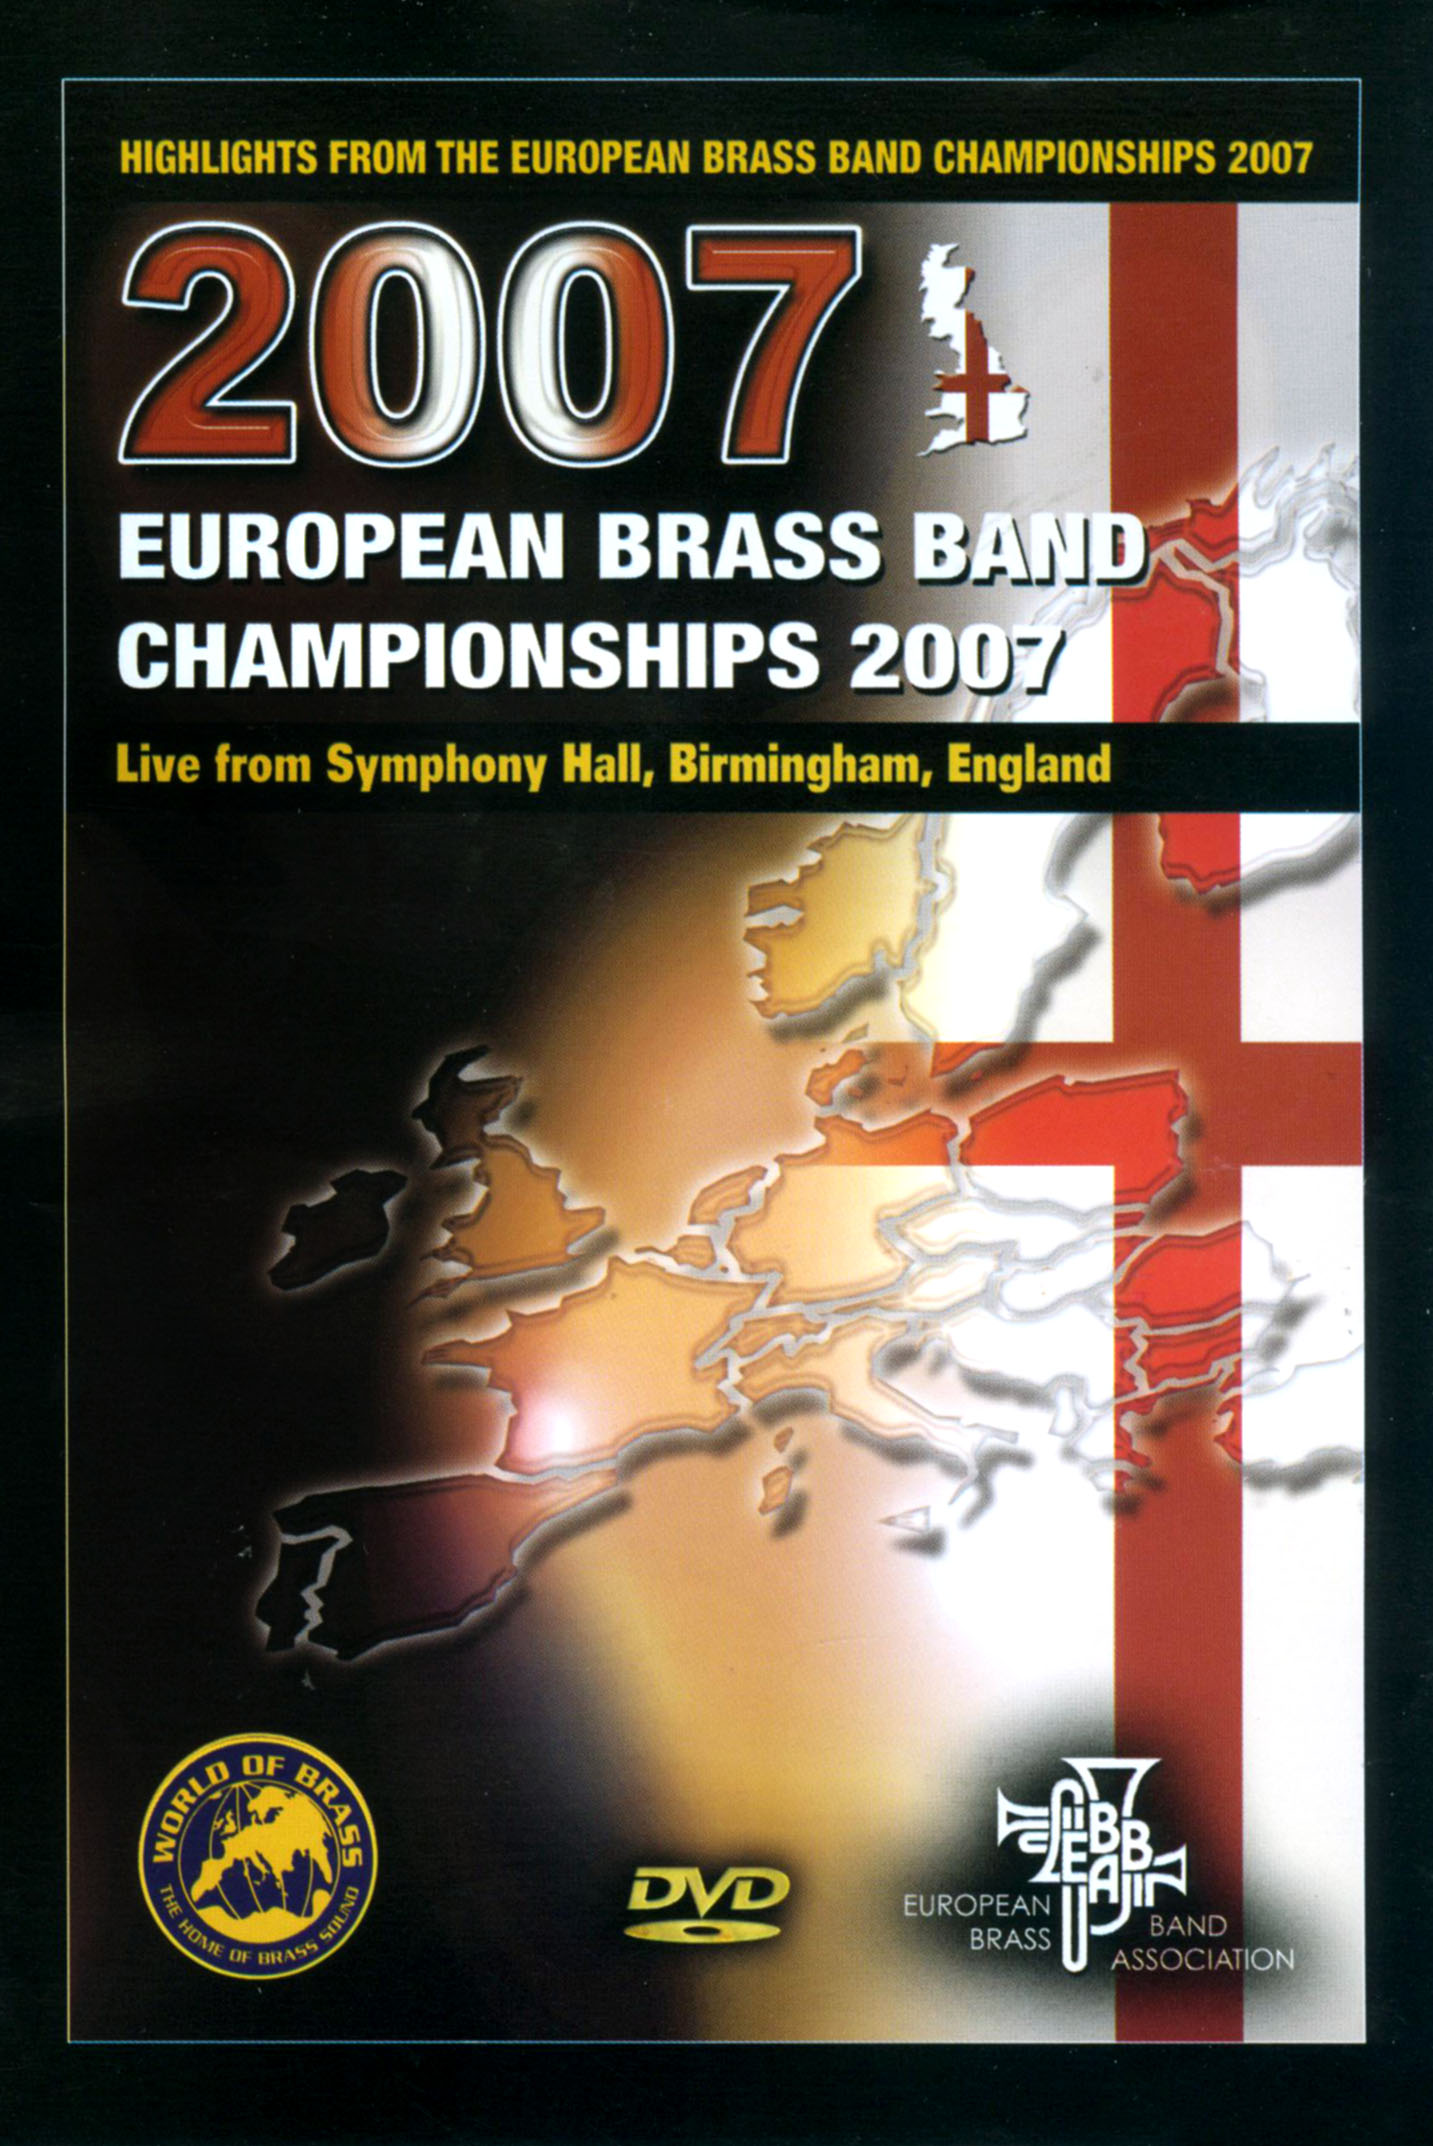 Highlights From the European Brass Band Championships 2007